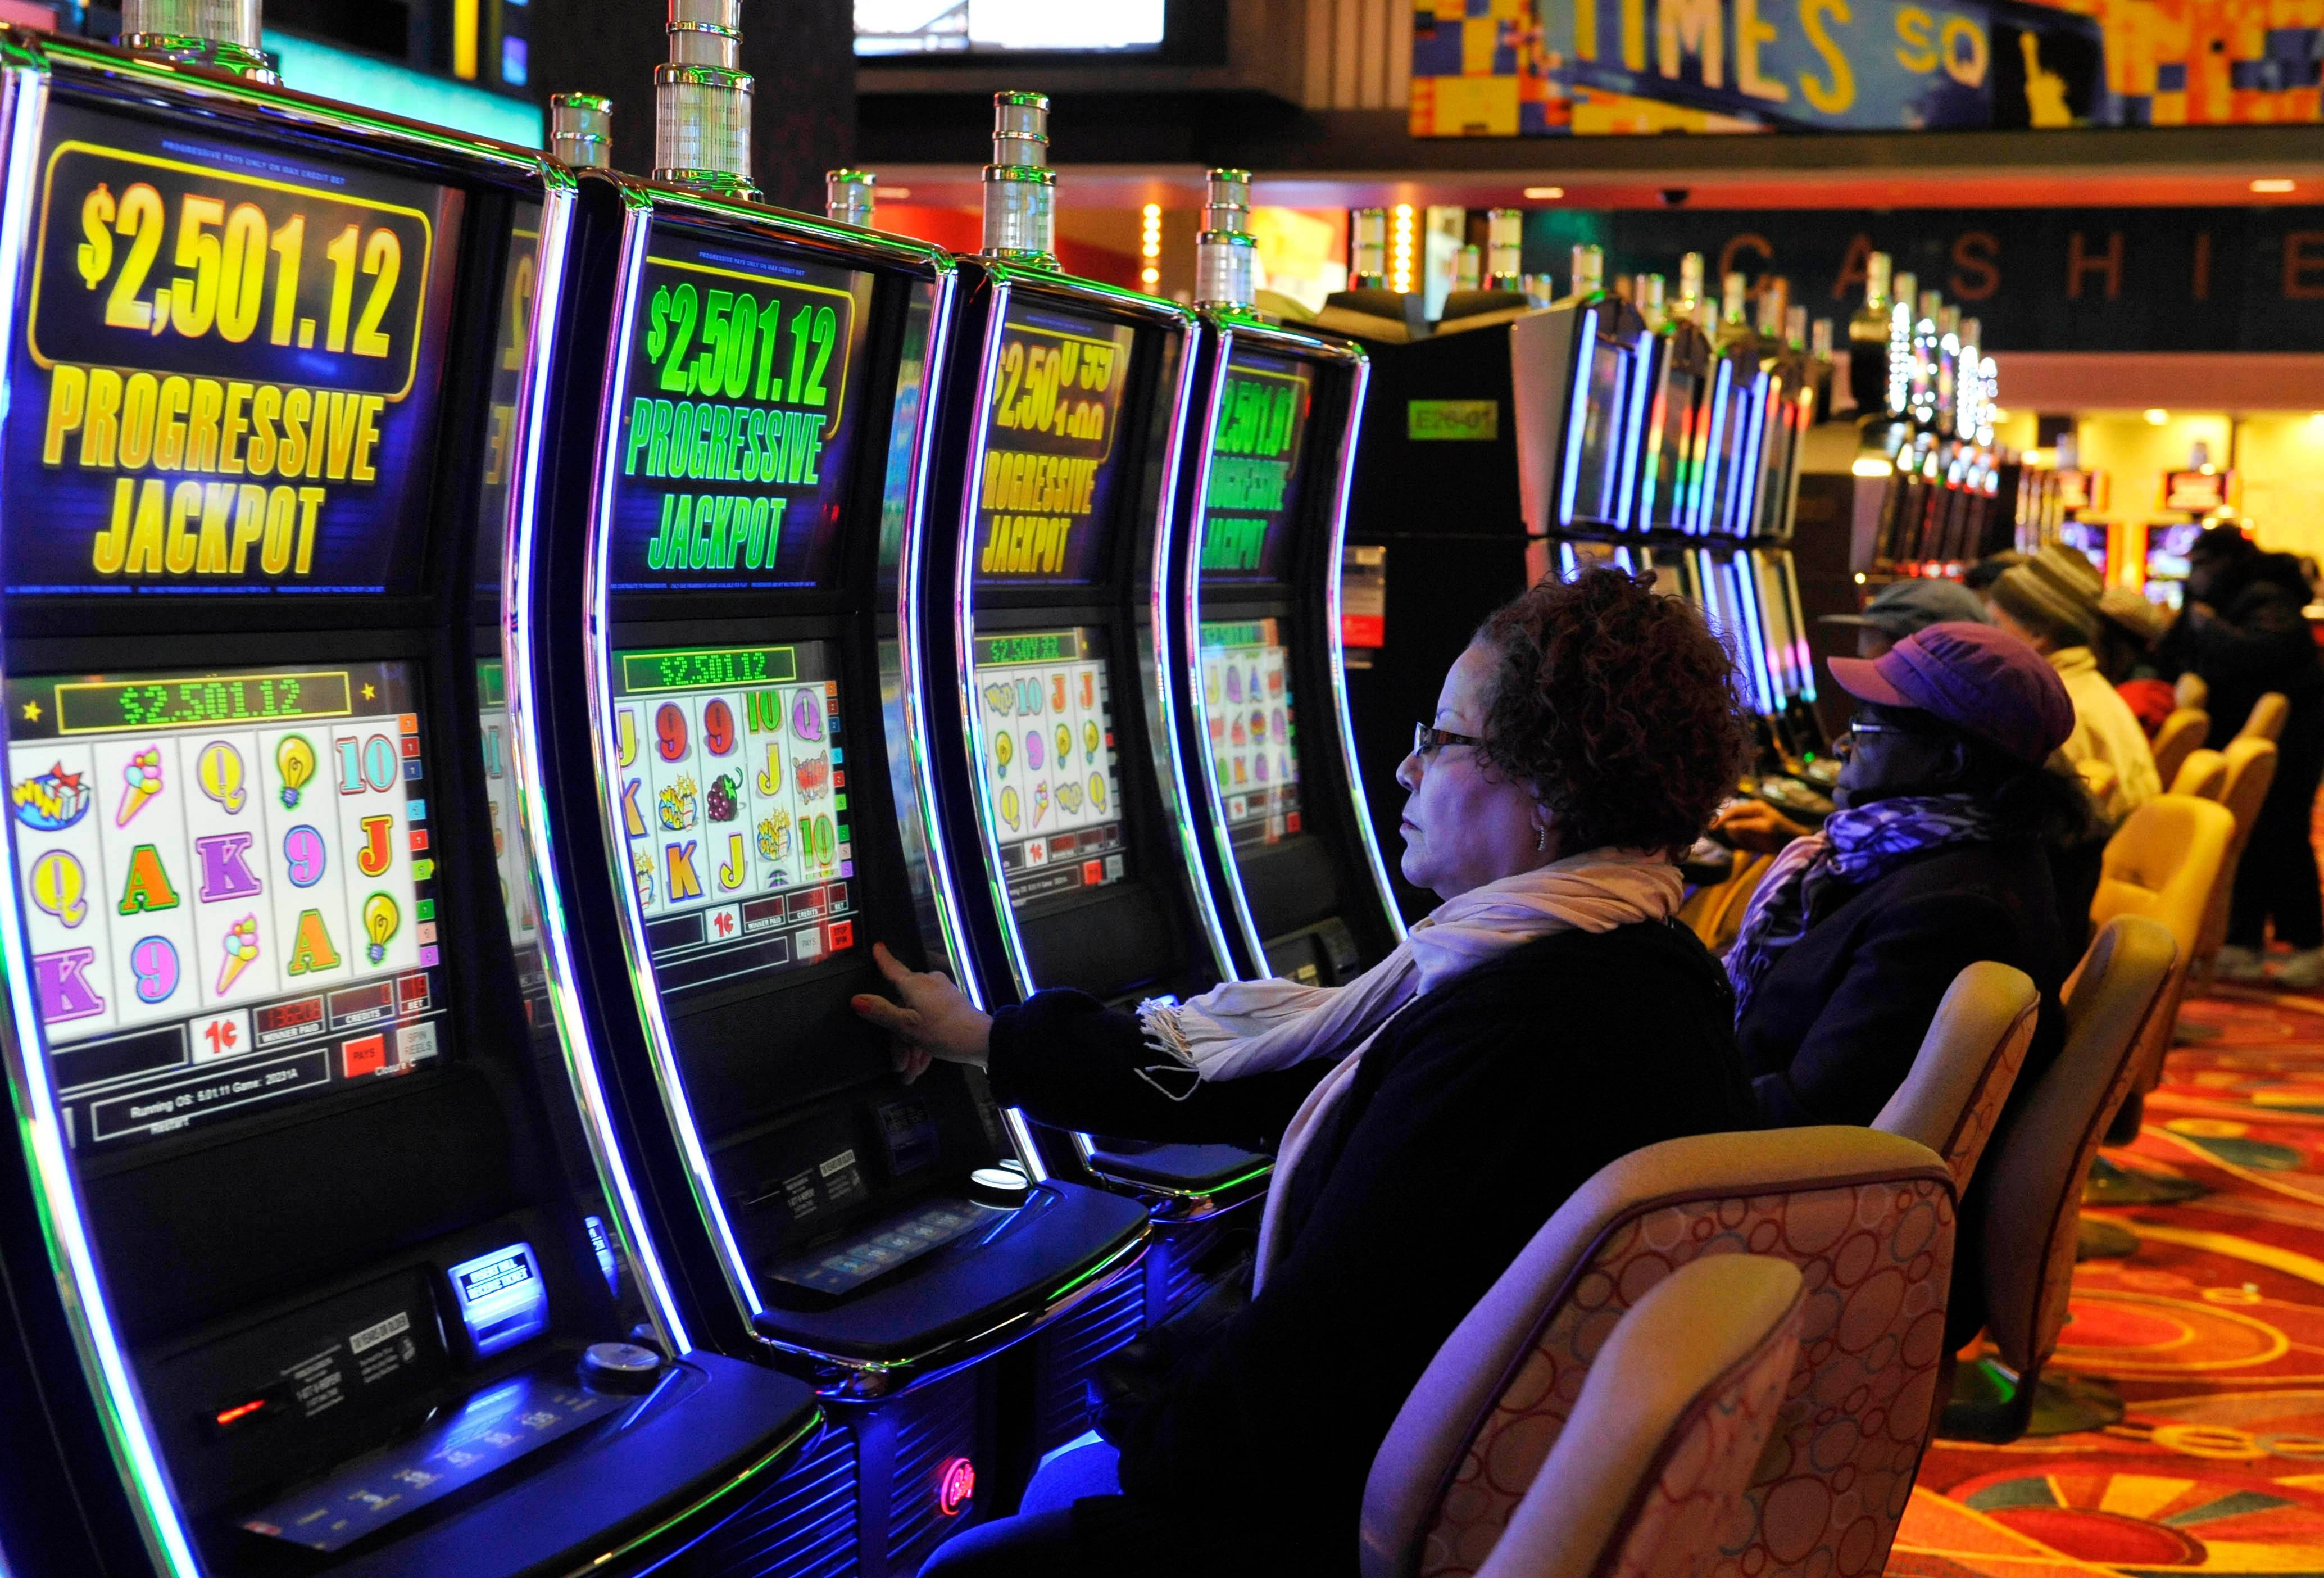 A new bill in the Illinois General Assembly would give Arlington International Racecourse half as many slot machines as previous proposals, plus a much larger state-owned casino in Chicago and casinos in Lake County and other locations.